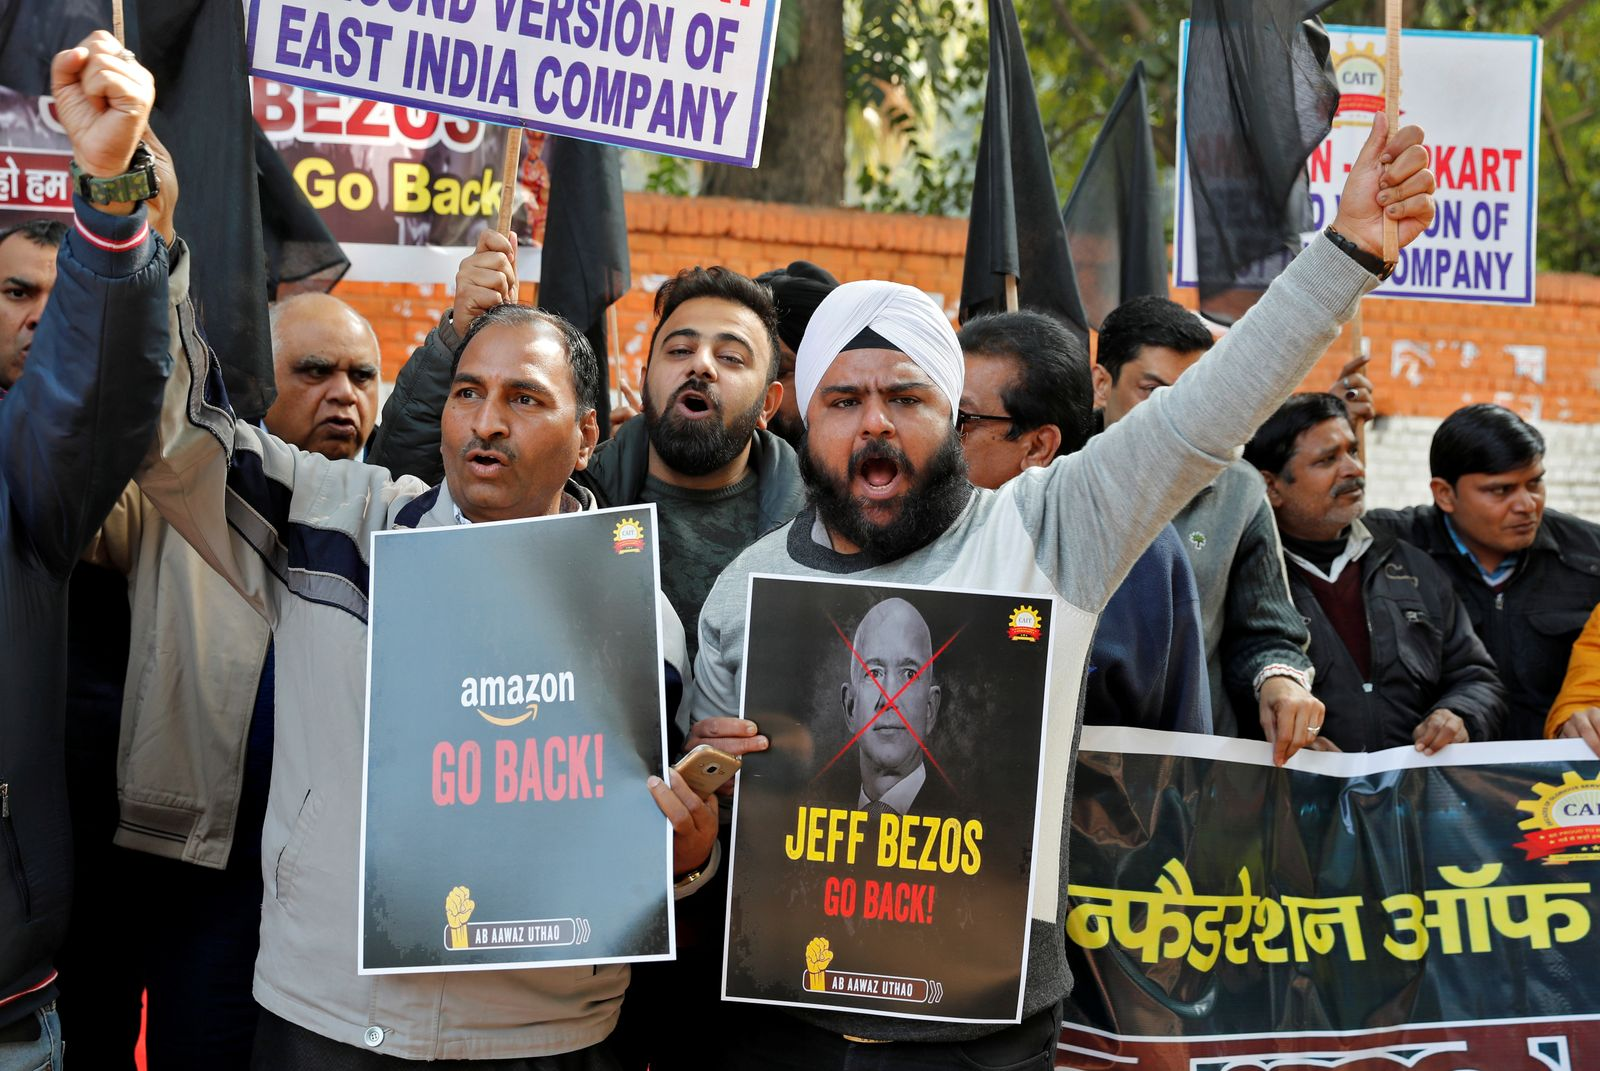 Members of the Confederation of All India Traders hold placards and shout slogans during a protest against the visit of Jeff Bezos to India, in New Delhi